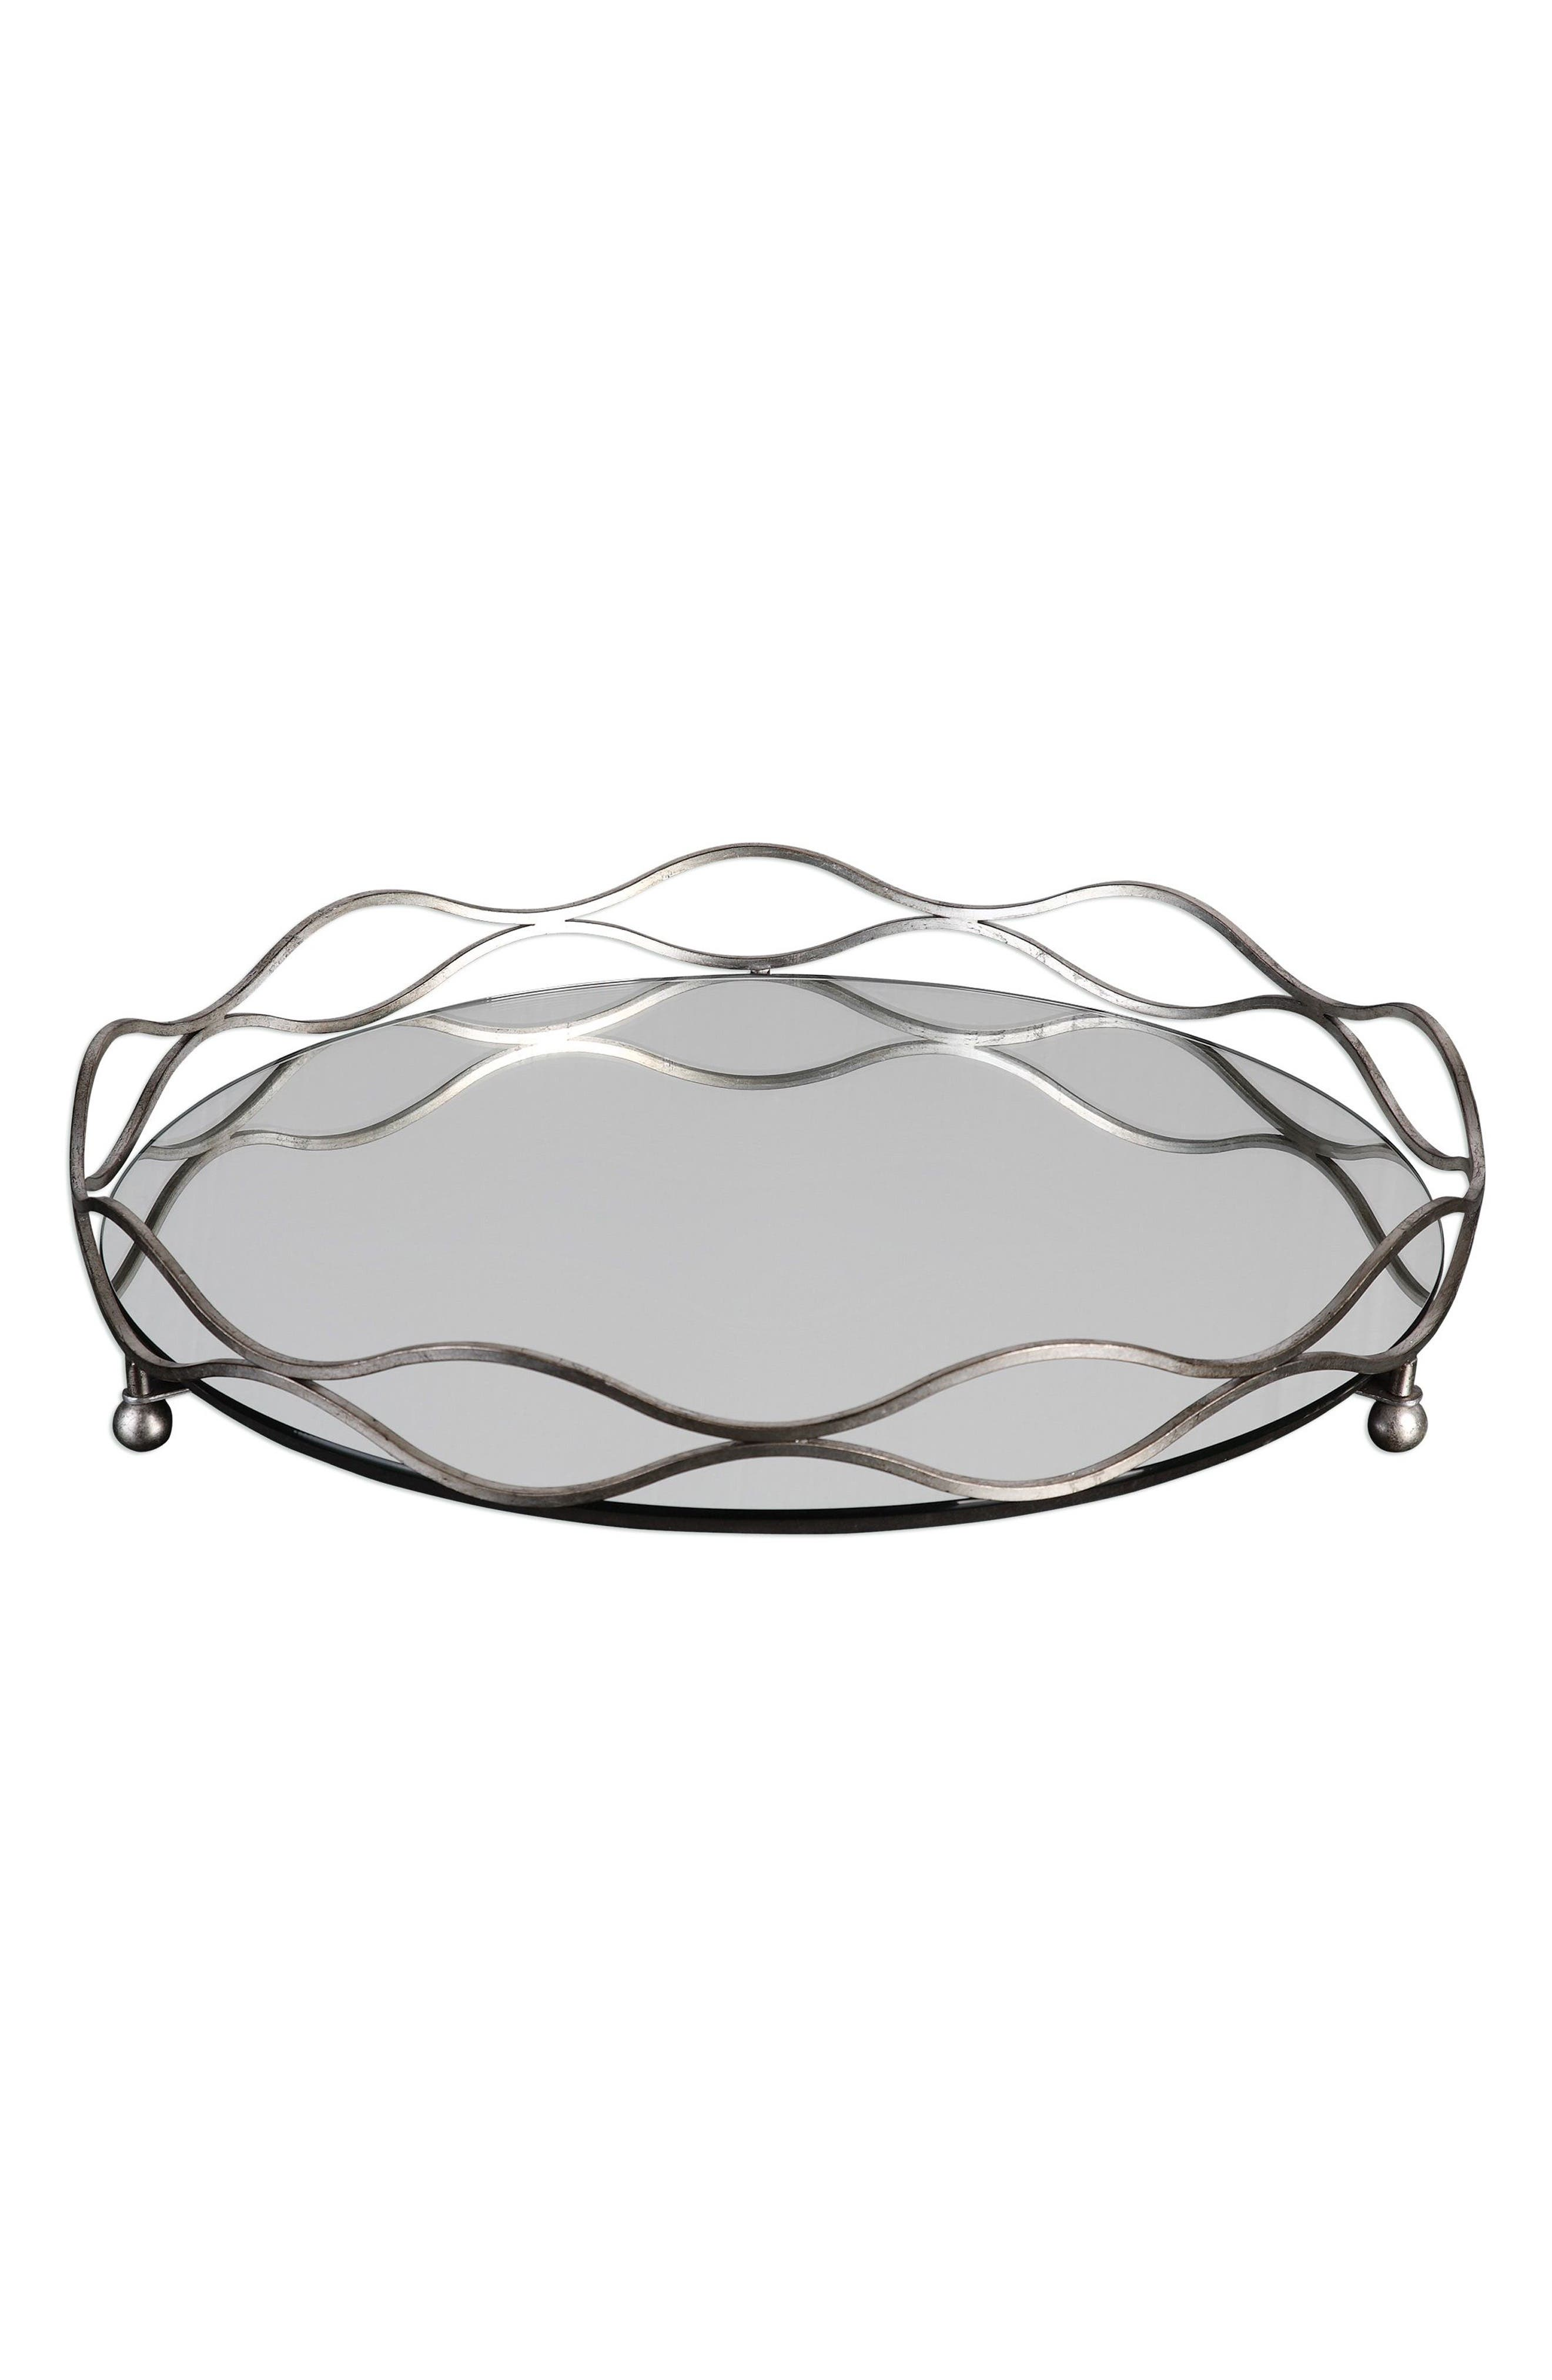 Mirrored Tray,                         Main,                         color, 040